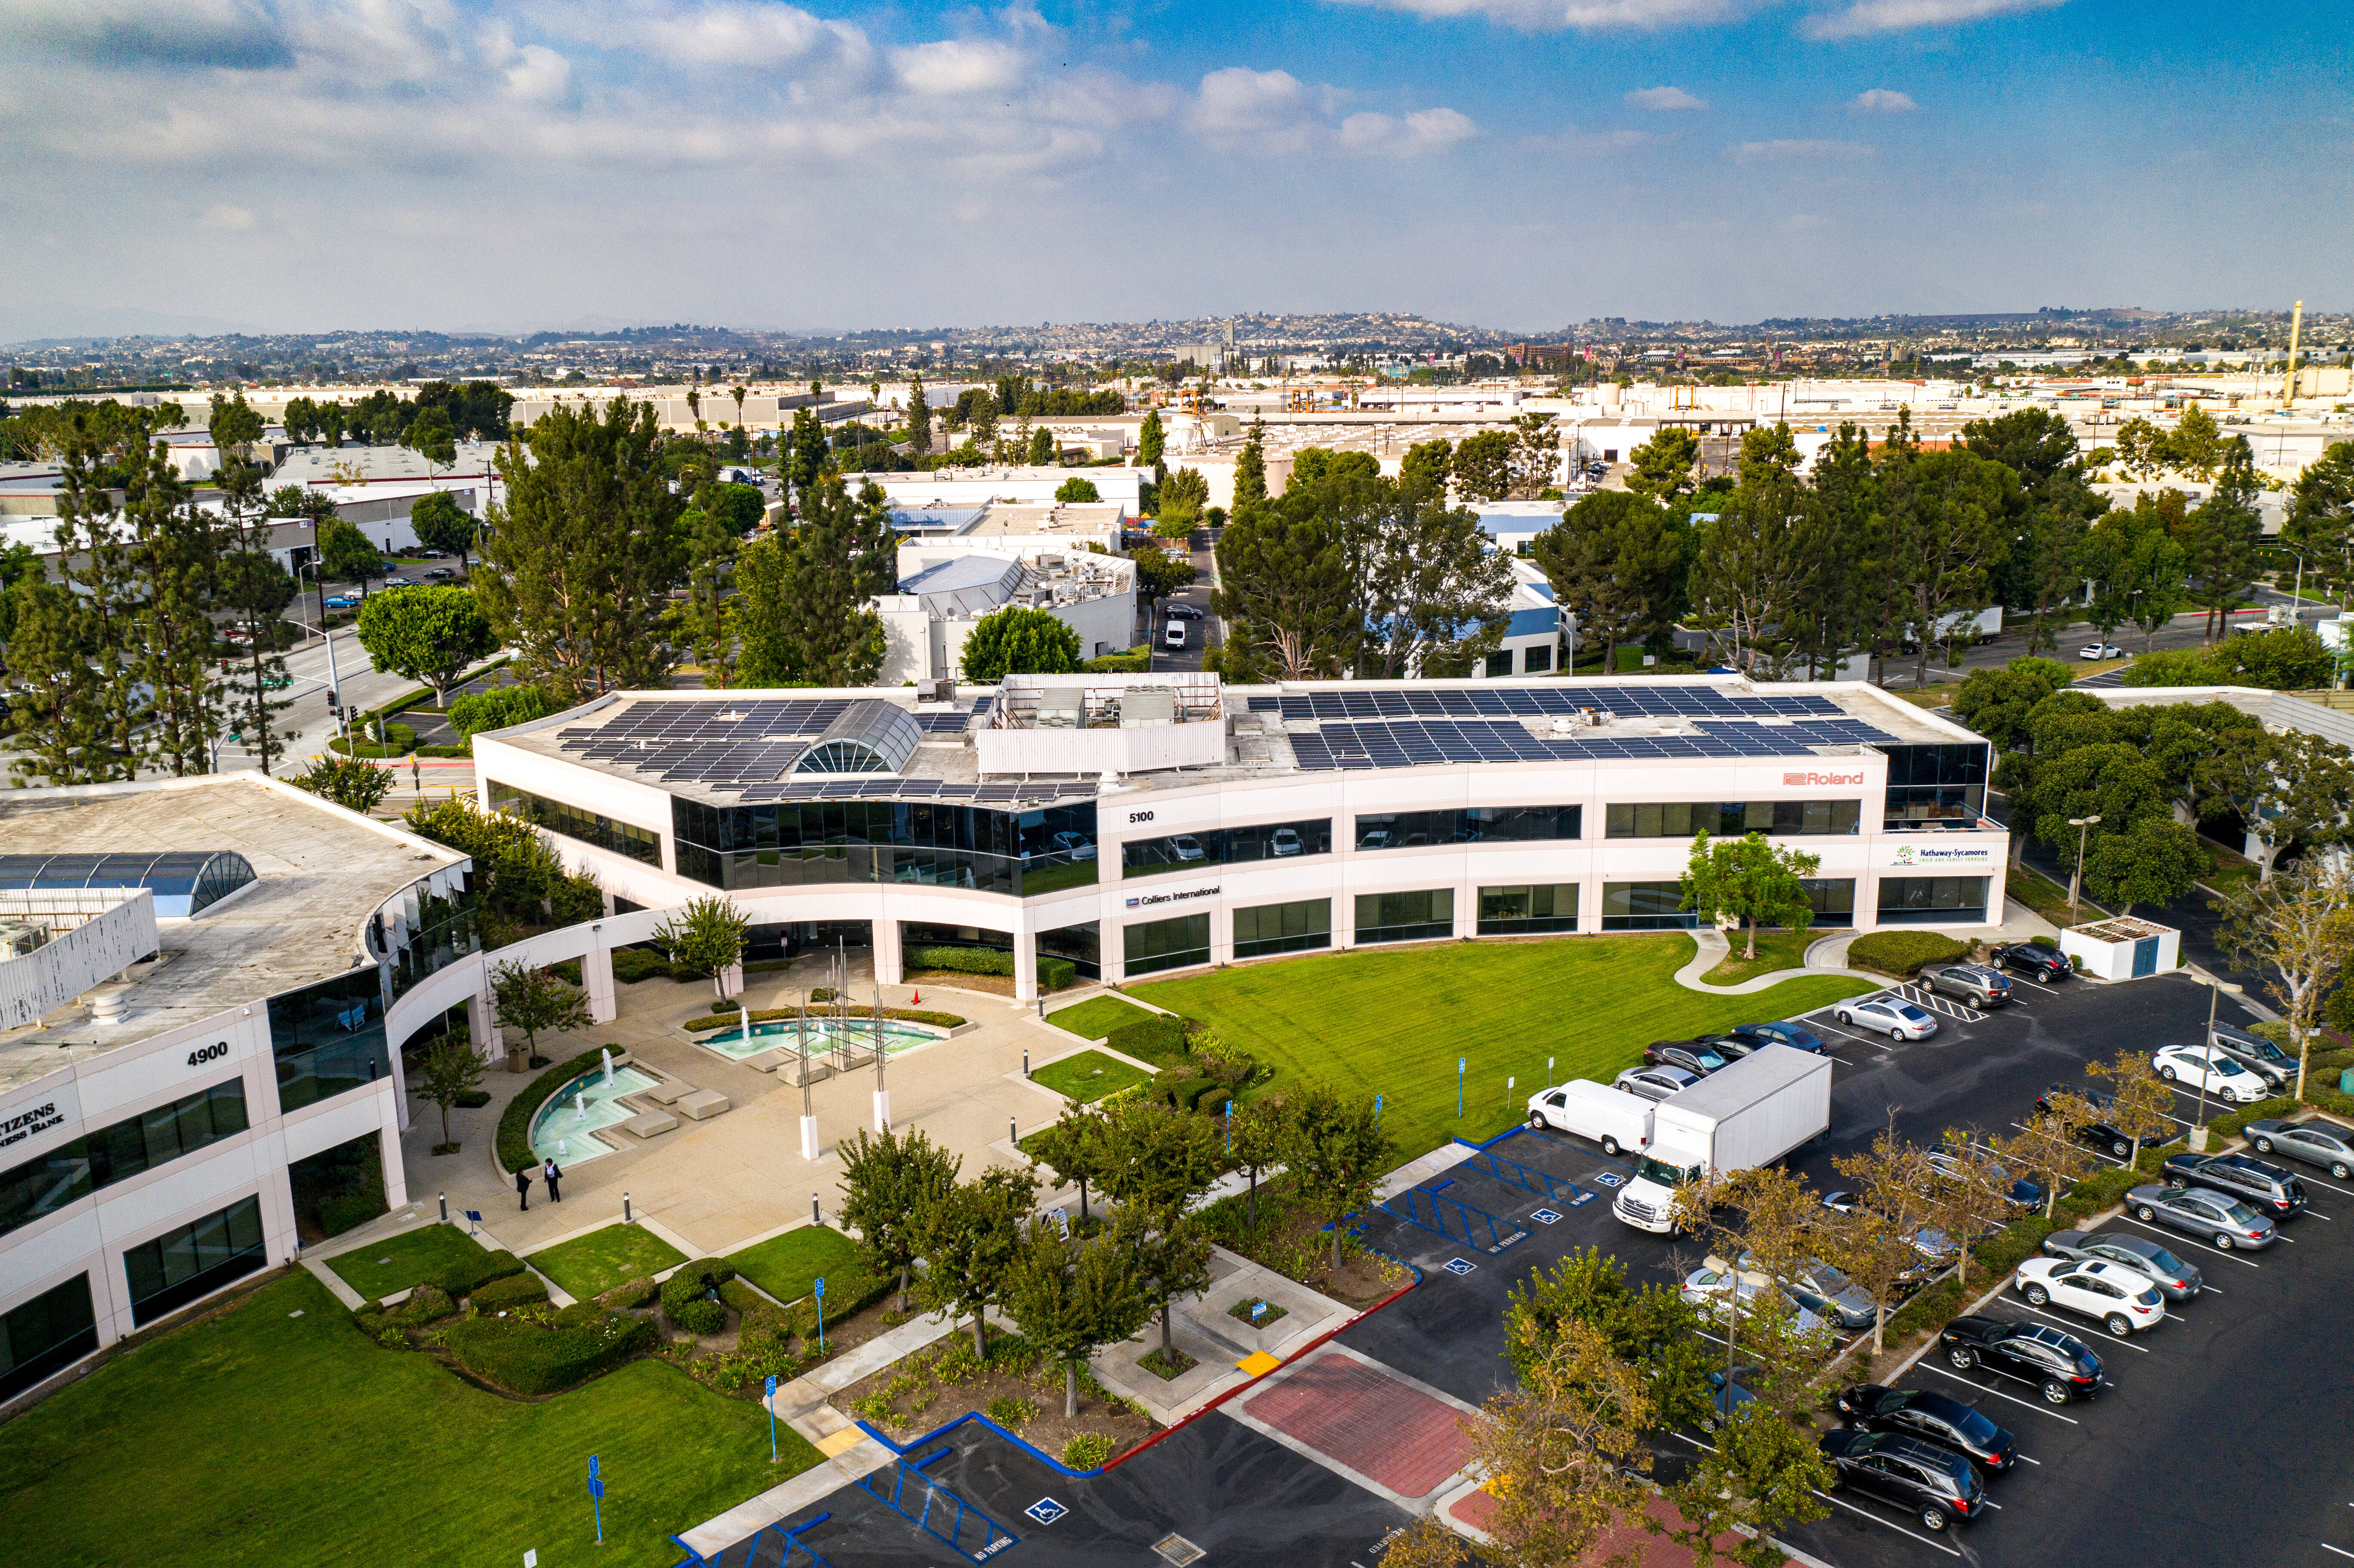 5100 S. Eastern Ave Commerce CA Office building for sale